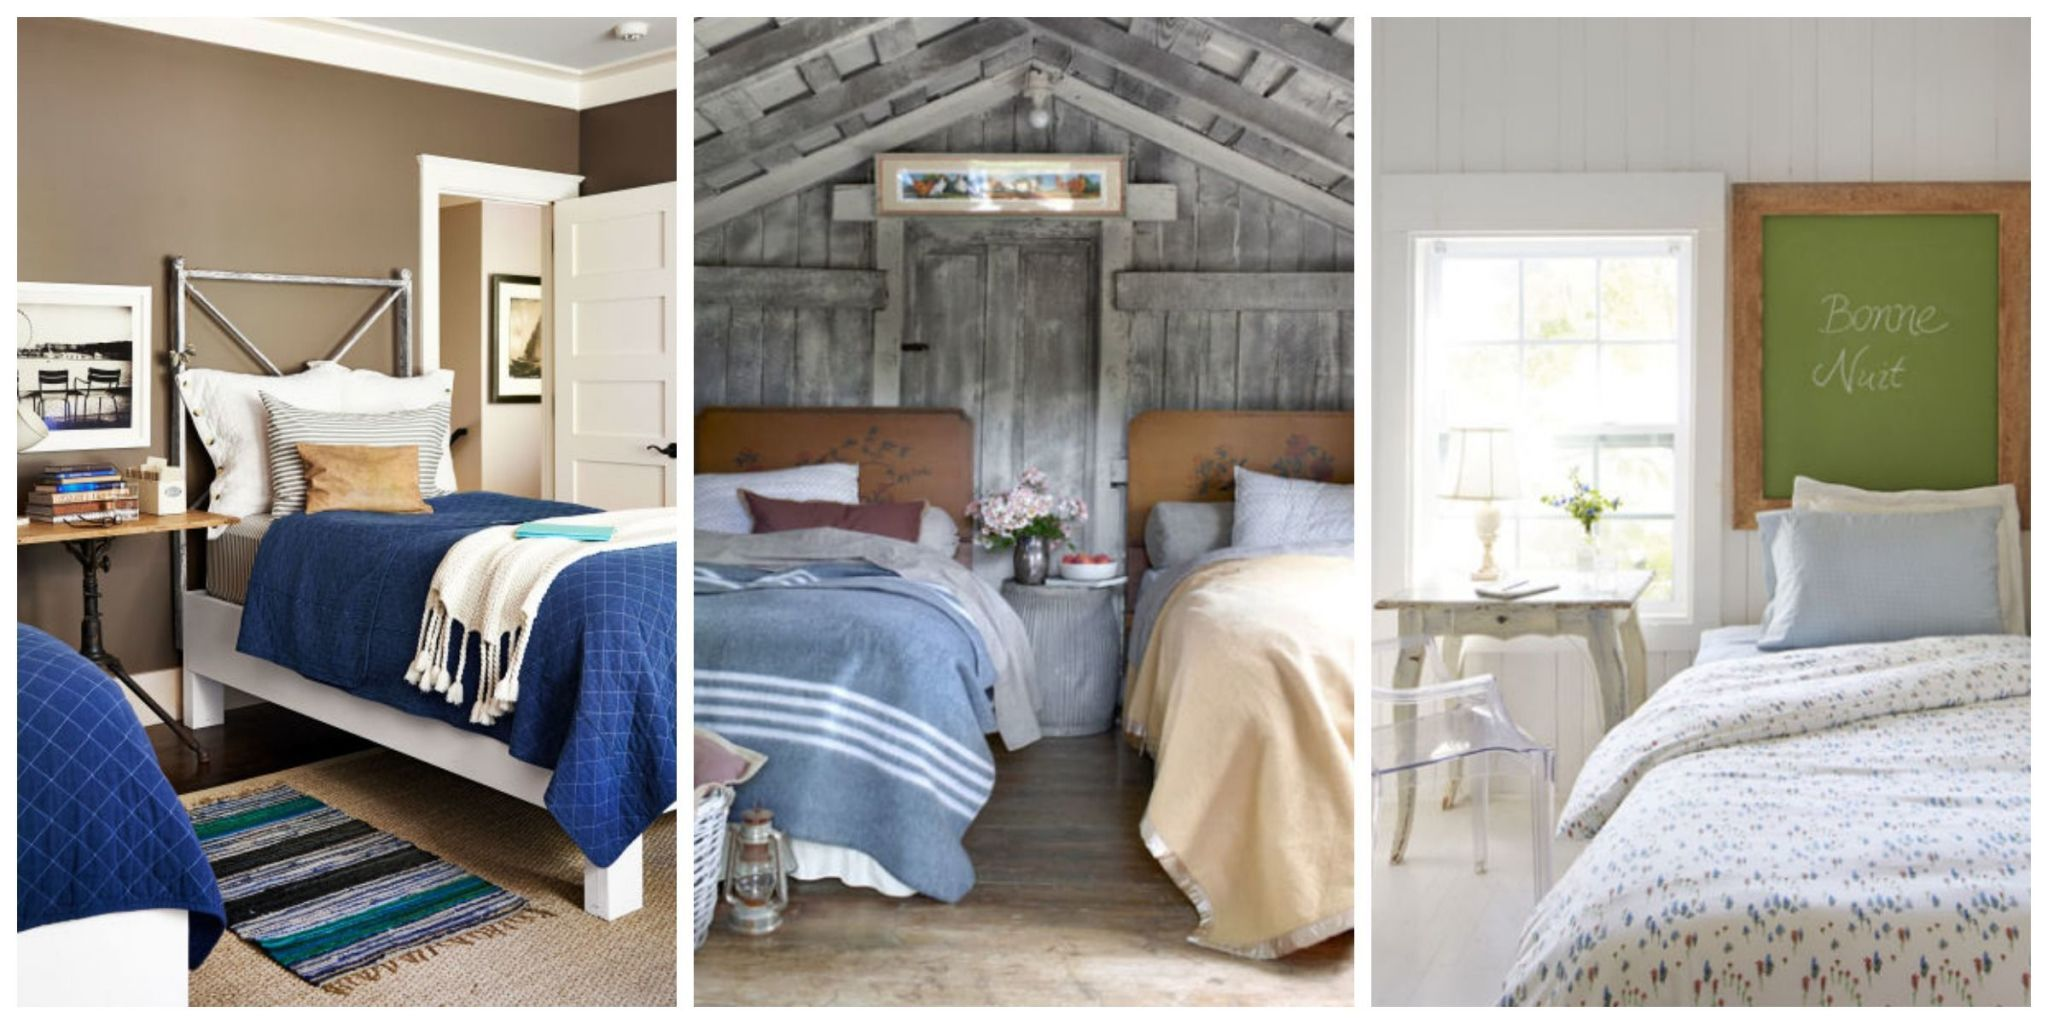 39 guest bedroom pictures decor ideas for guest rooms rh countryliving com Guest Bedroom Design Ideas Guest Room Nursery Ideas